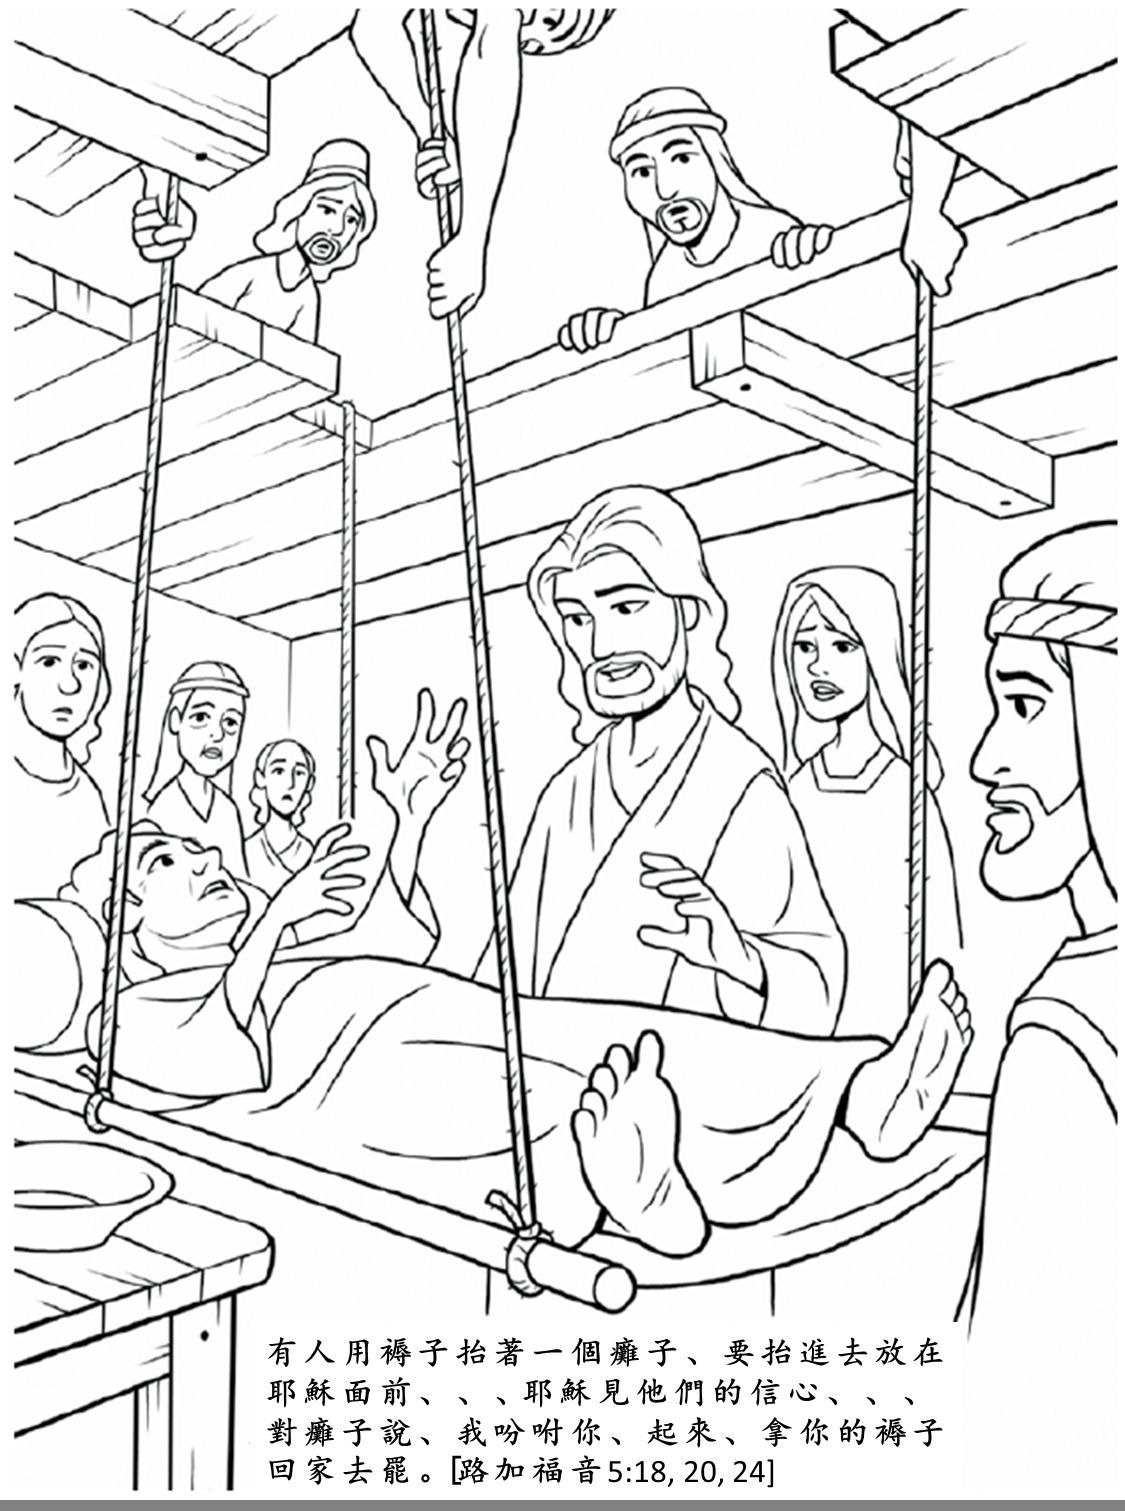 jesus heals the leper coloring page excellent photo of jesus heals the leper coloring page the page coloring heals leper jesus